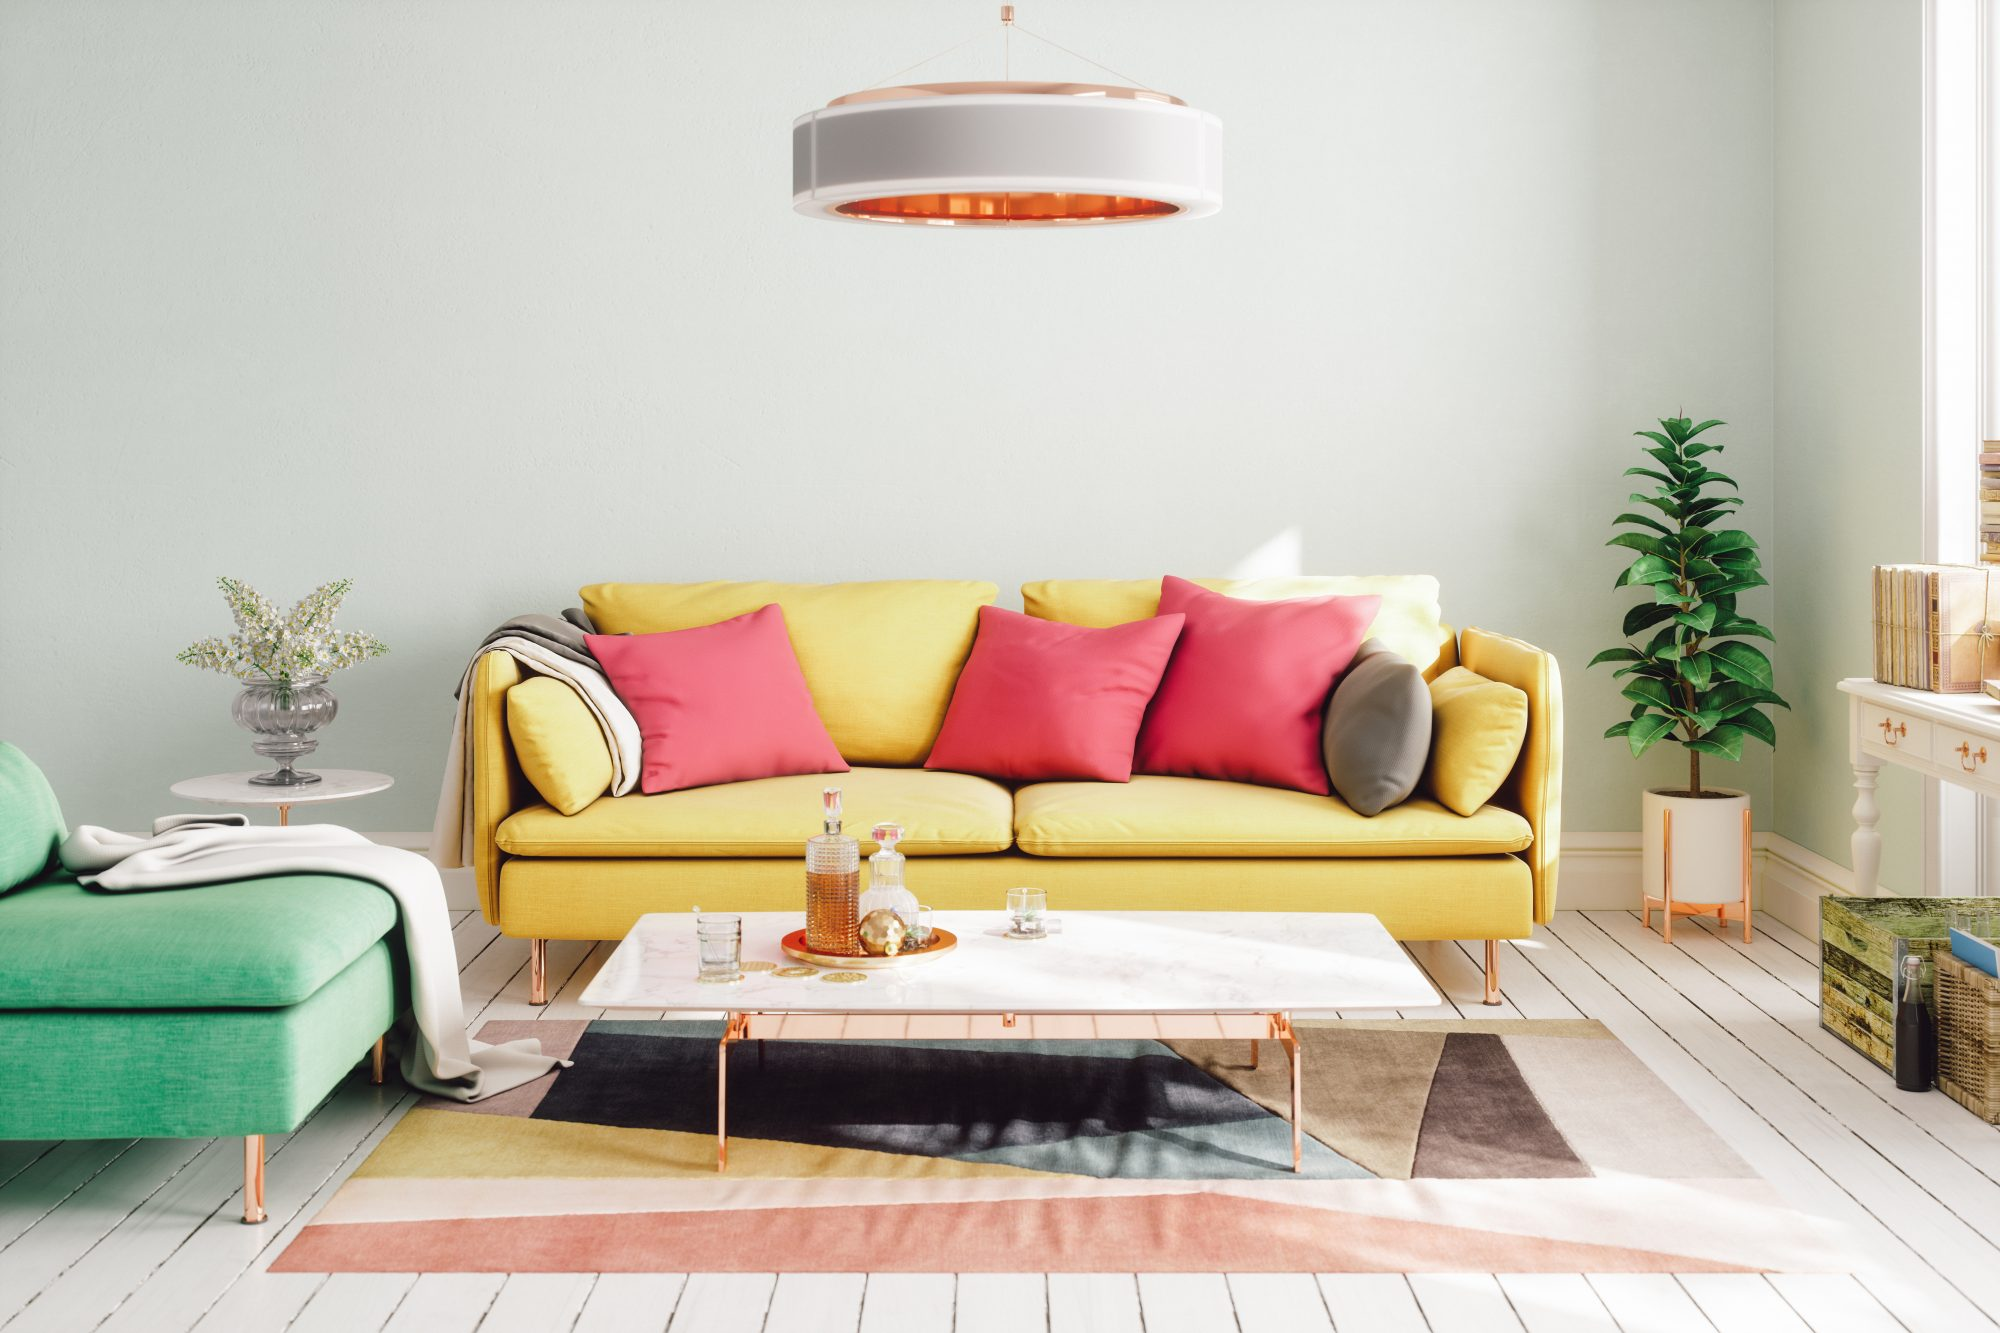 How to Tweak Your Living Space for More Happiness